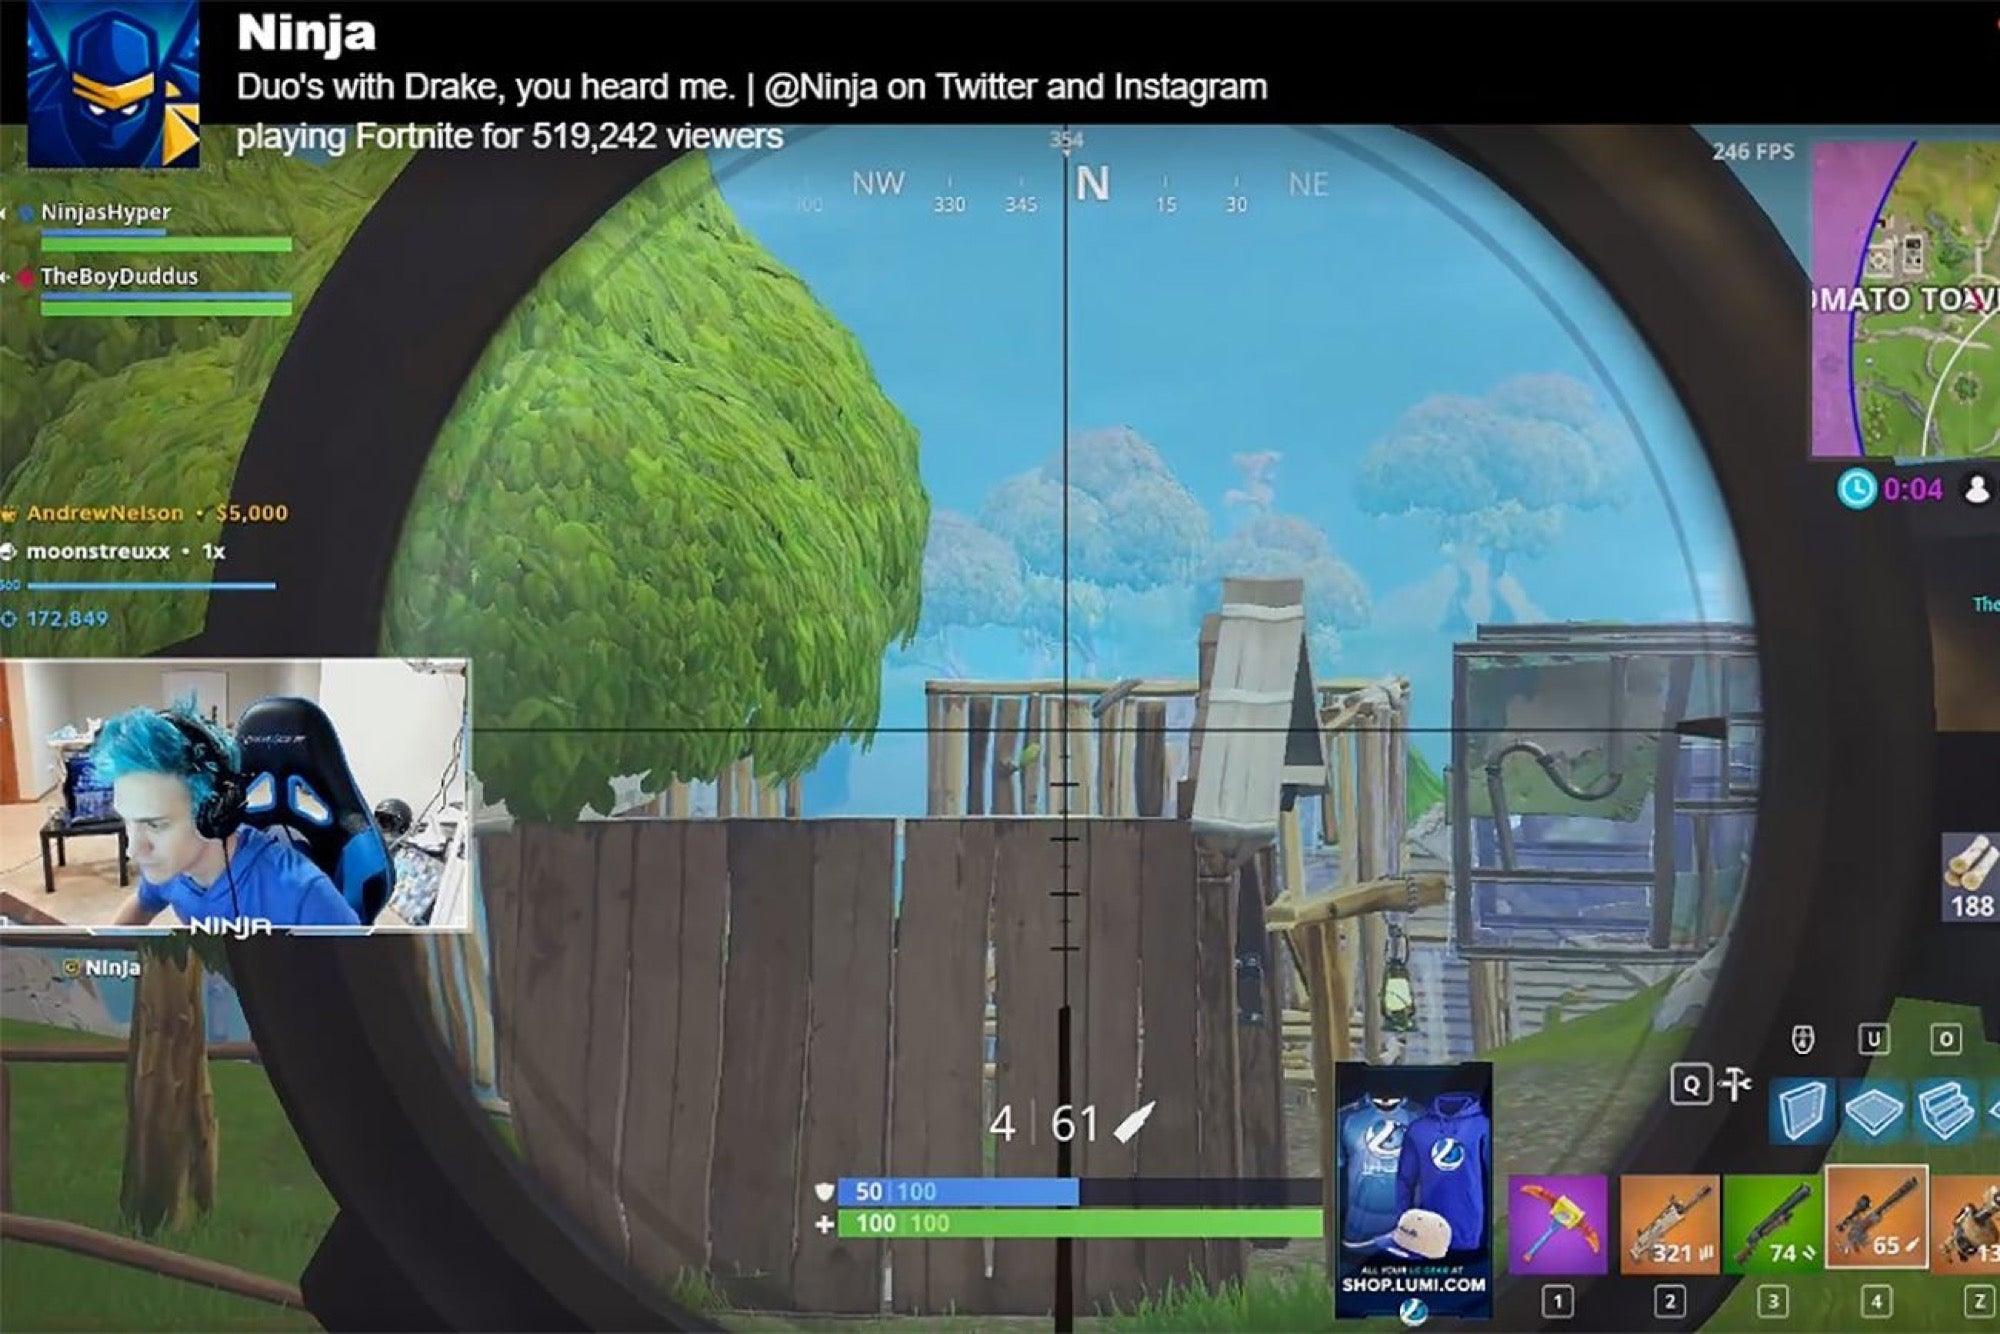 Highly Paid 'Fortnite' Streamer Breaks Twitch Records With Help From